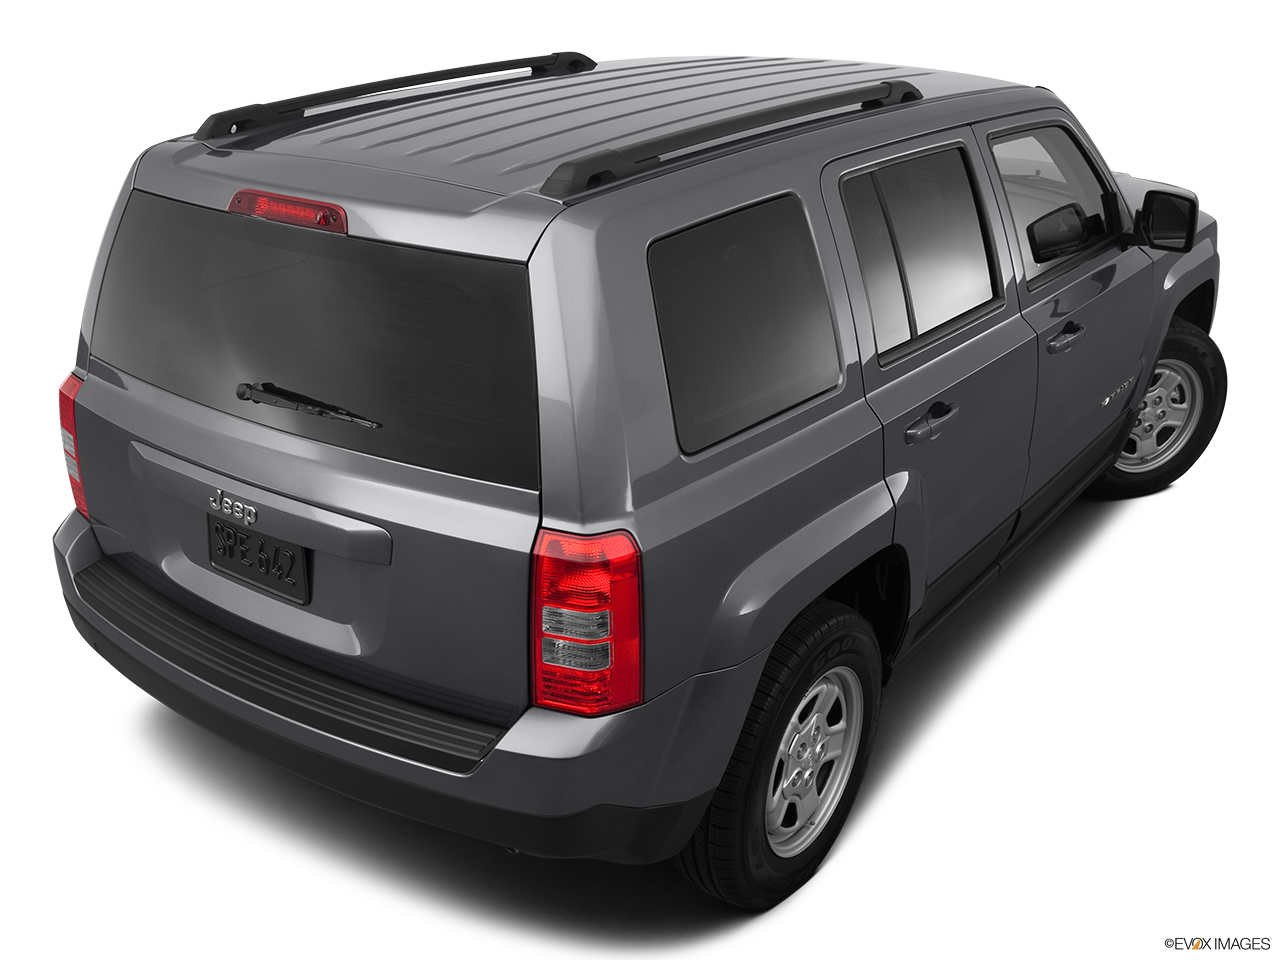 2012 Jeep Patriot Sport Rear 3/4 angle view.